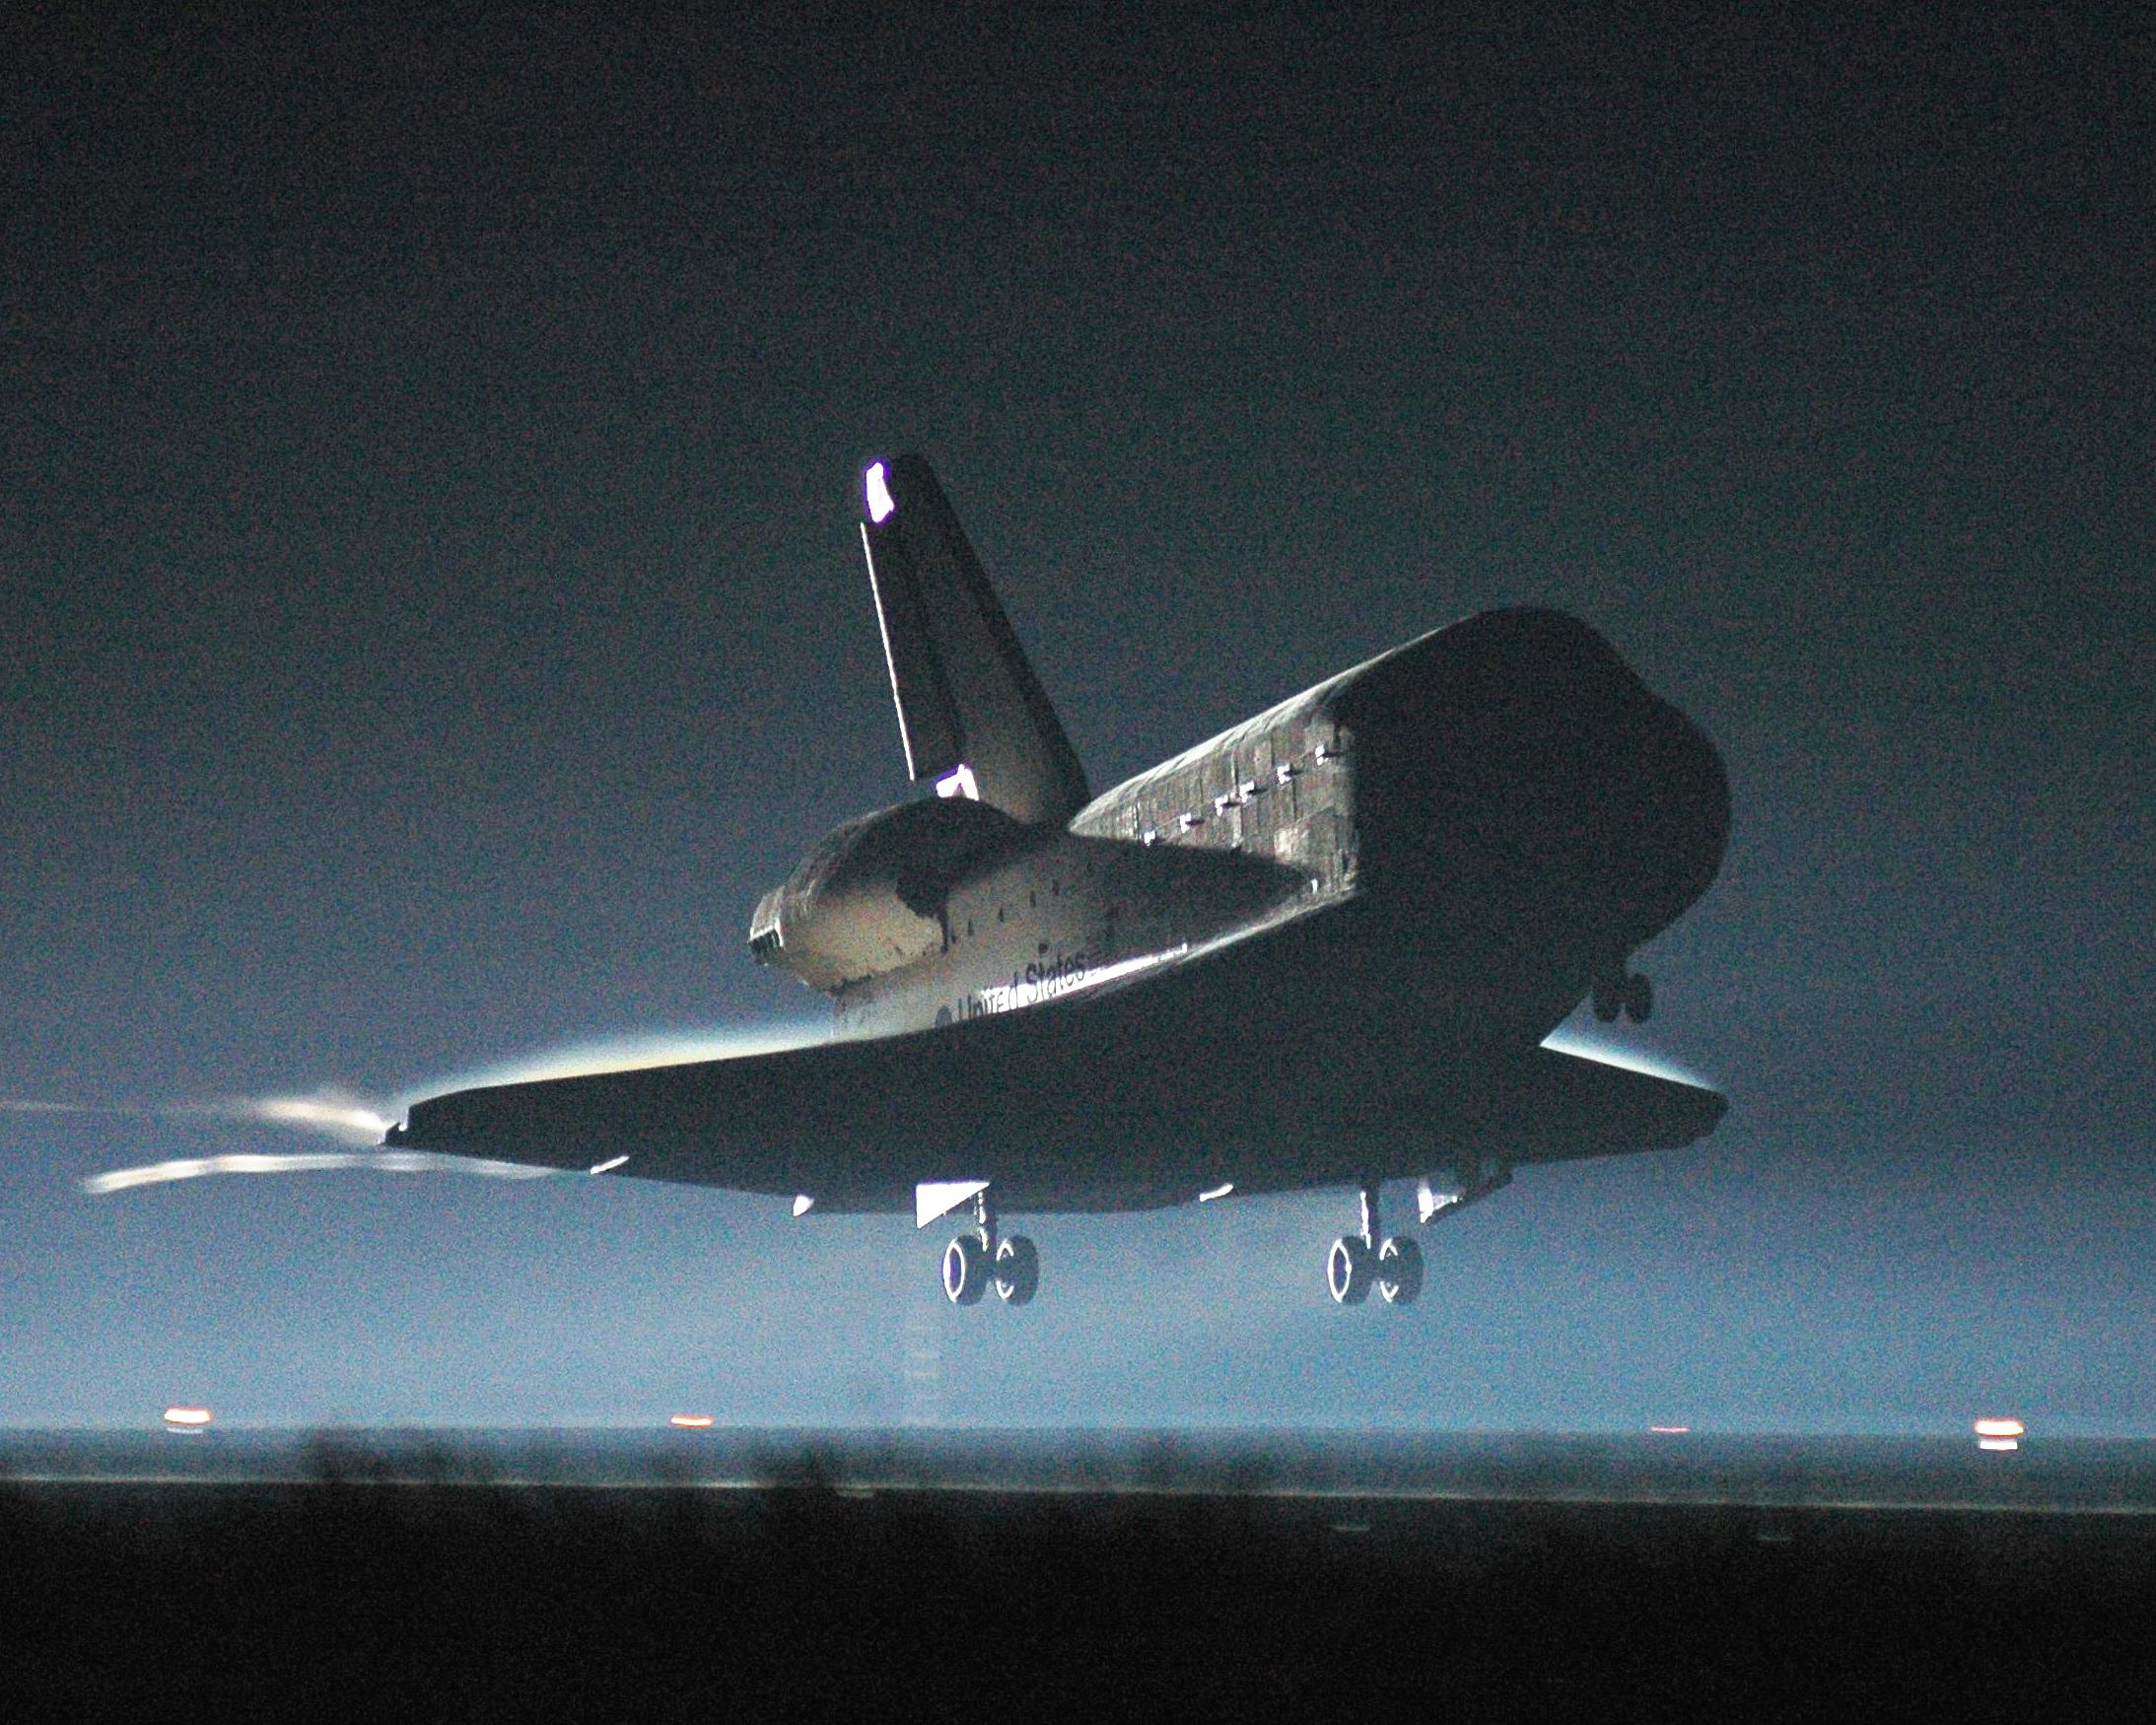 File:NASA-STS115Landing-KSC-06PD-2184.jpg